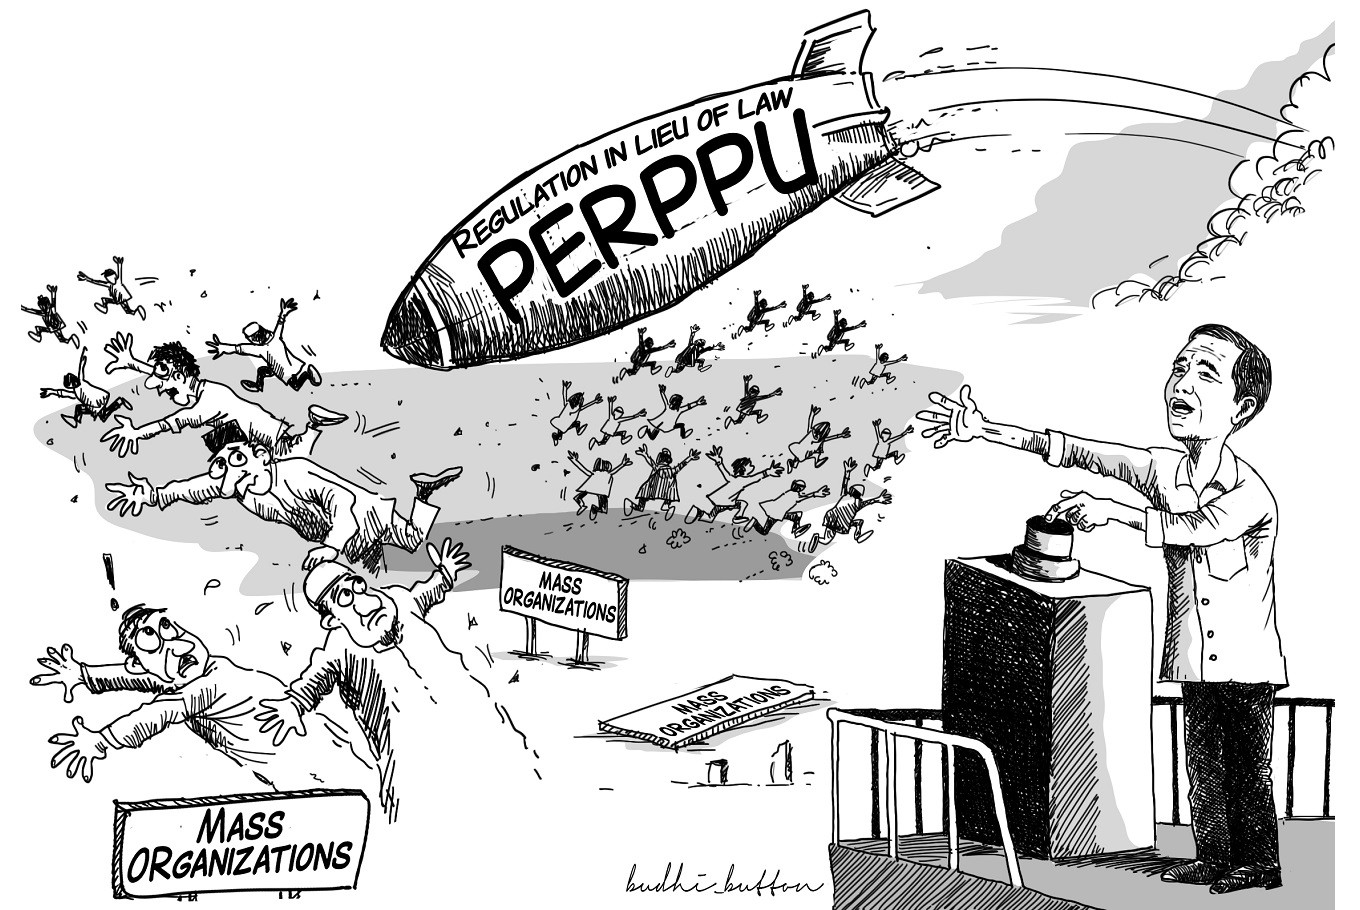 EDITORIAL: Perppu's slippery slope